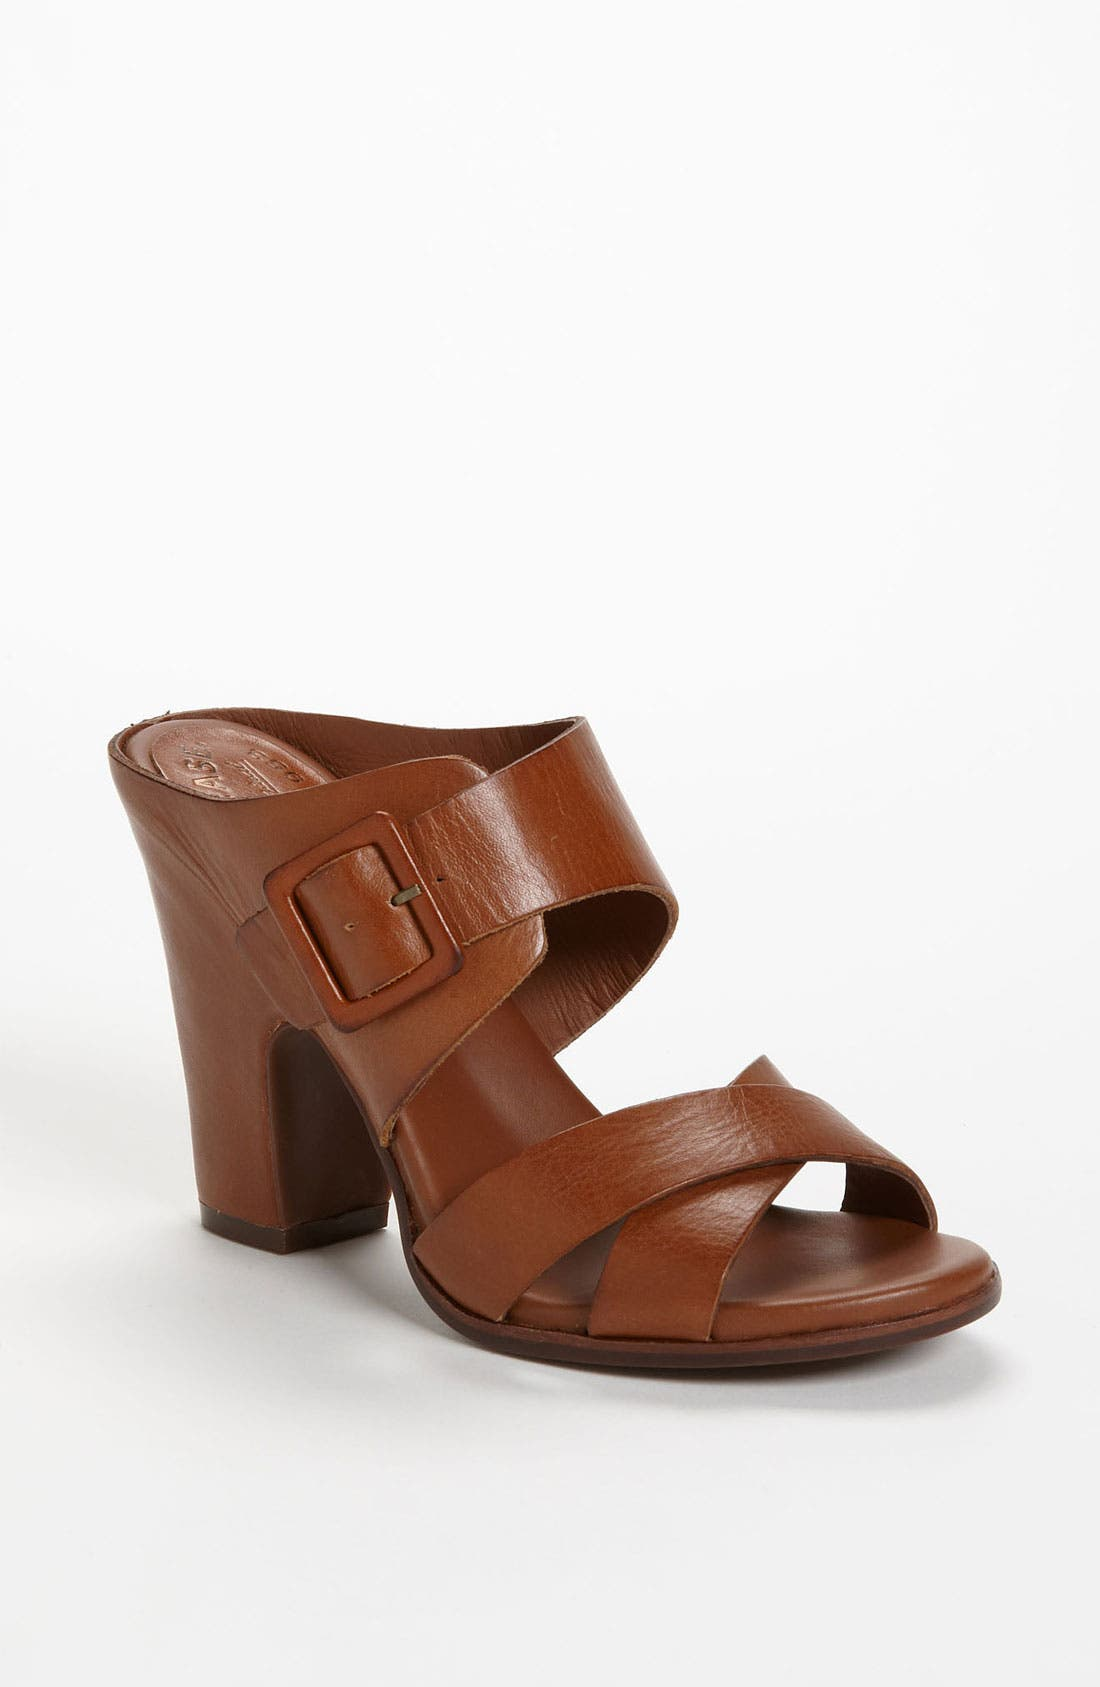 Alternate Image 1 Selected - Kork-Ease 'Colette' Sandal